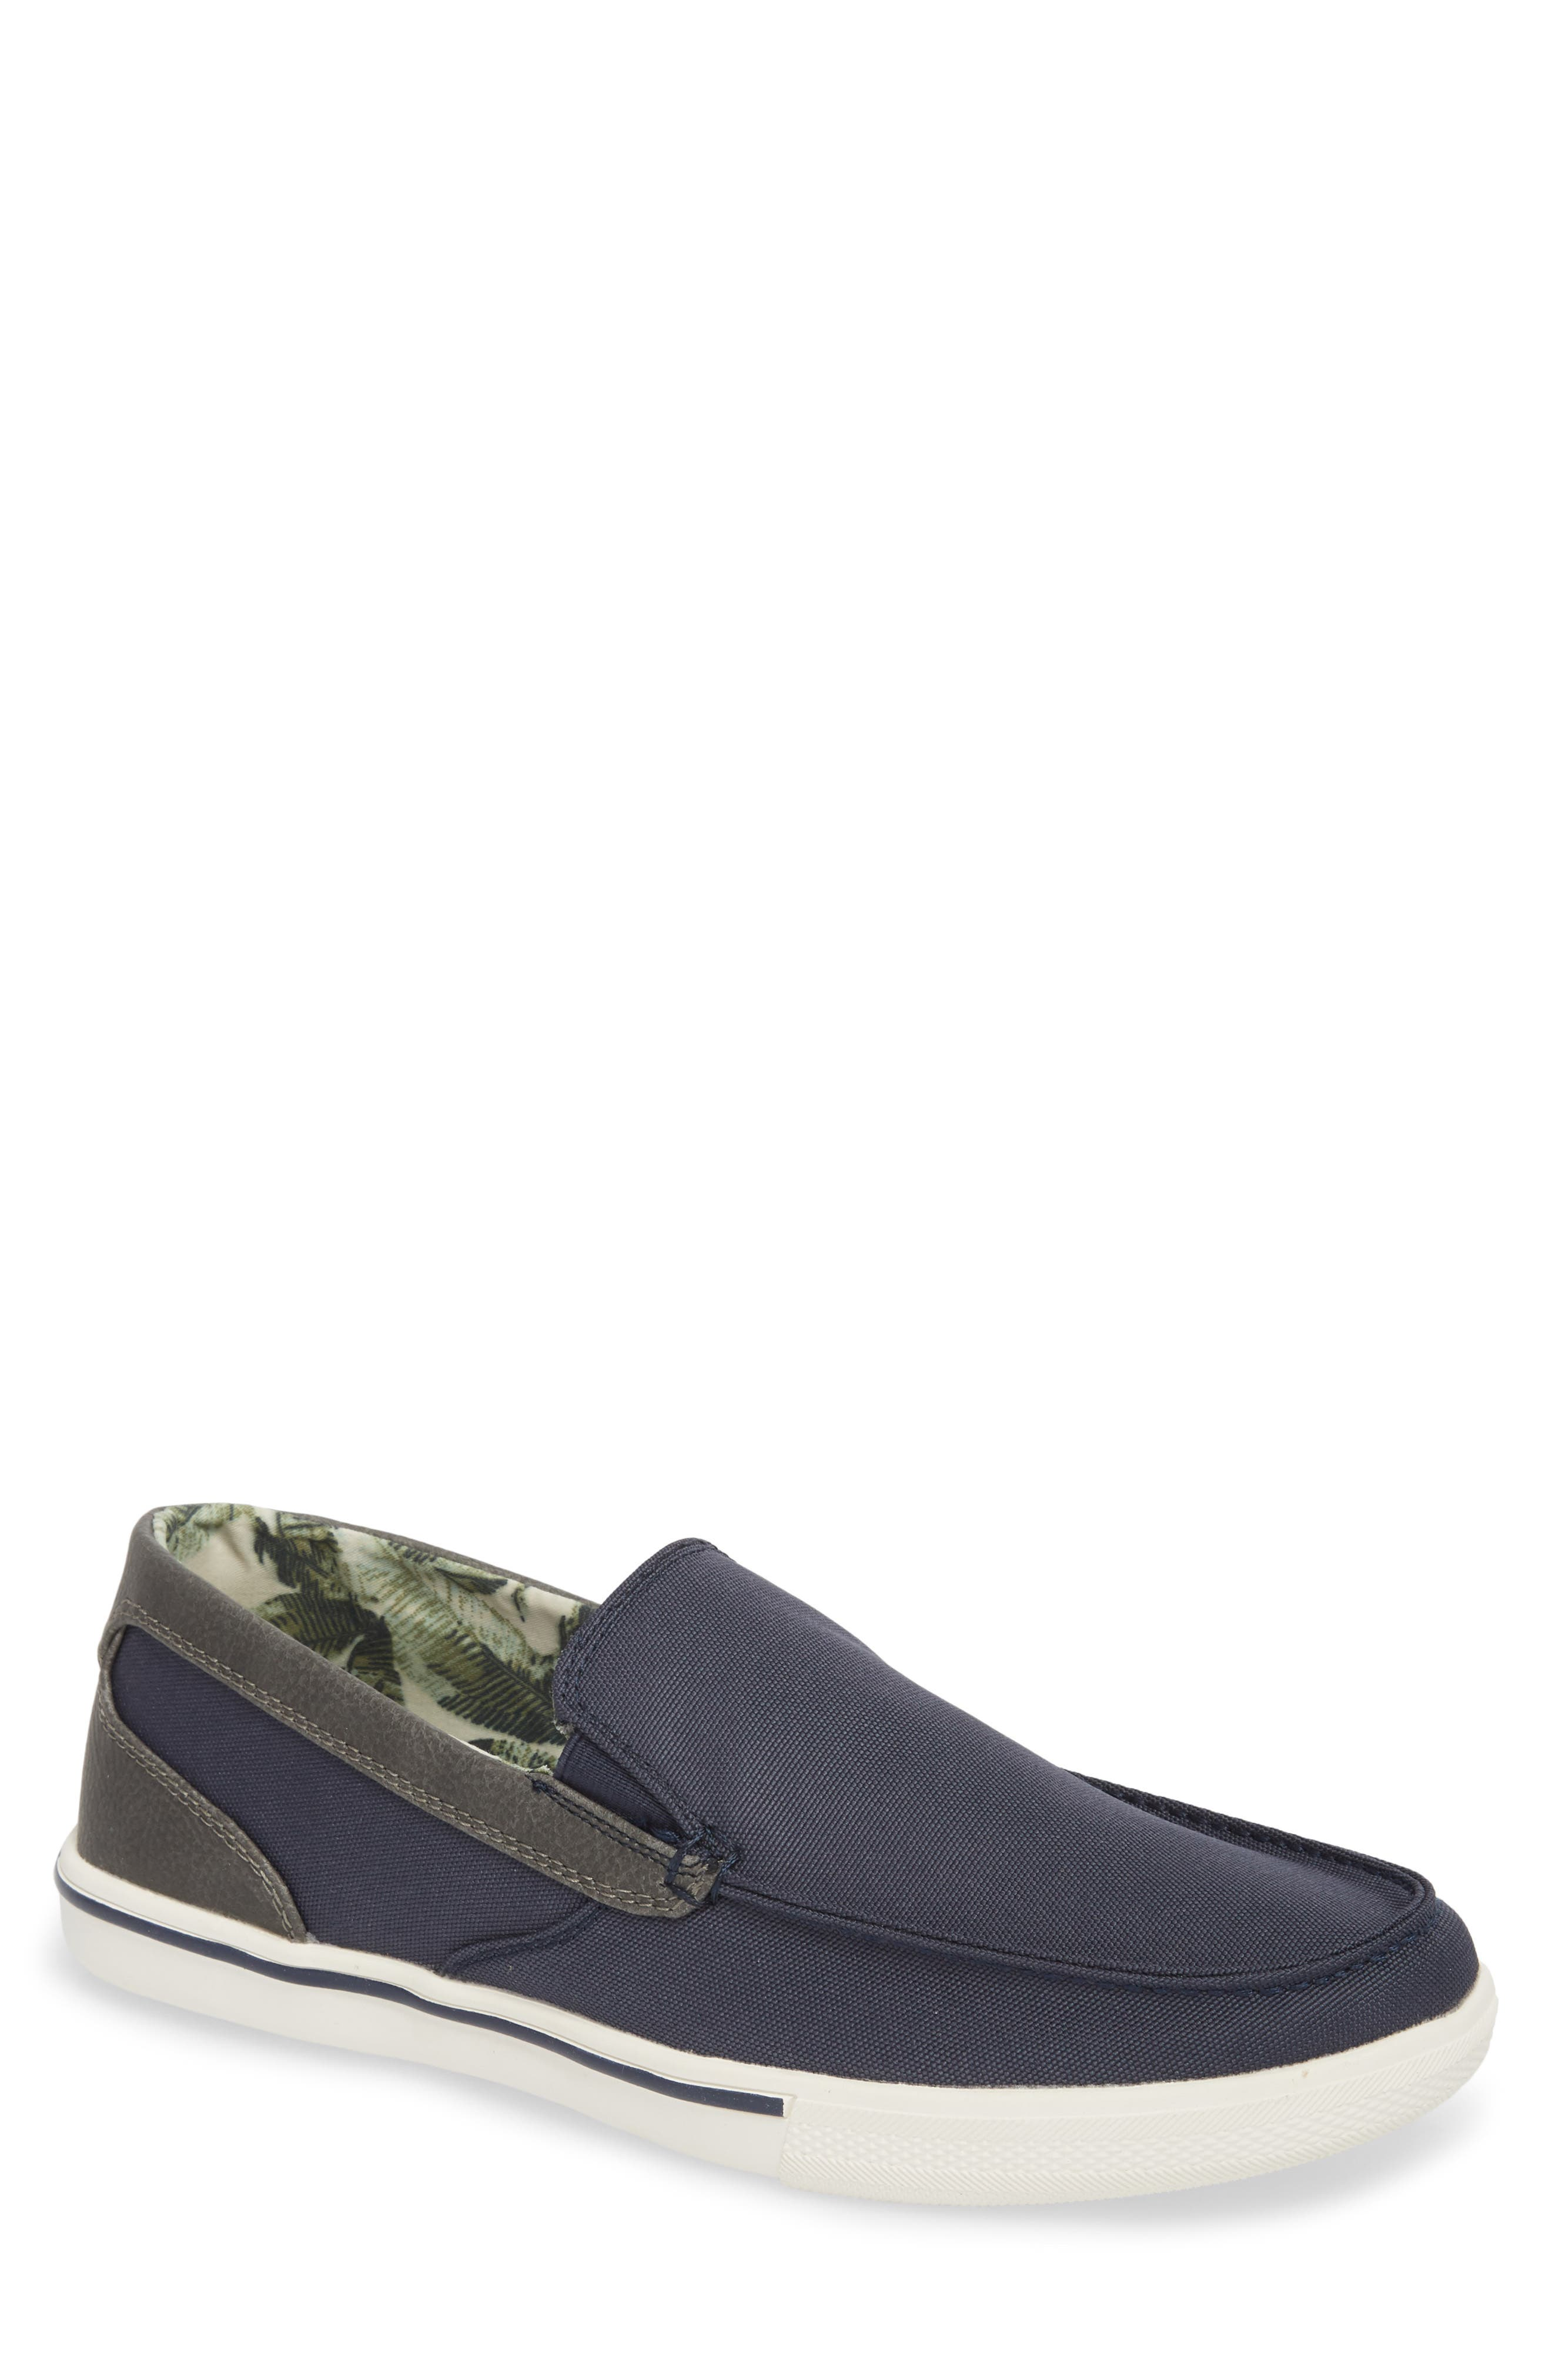 Calderon Loafer,                             Main thumbnail 1, color,                             Navy Canvas/ Leather